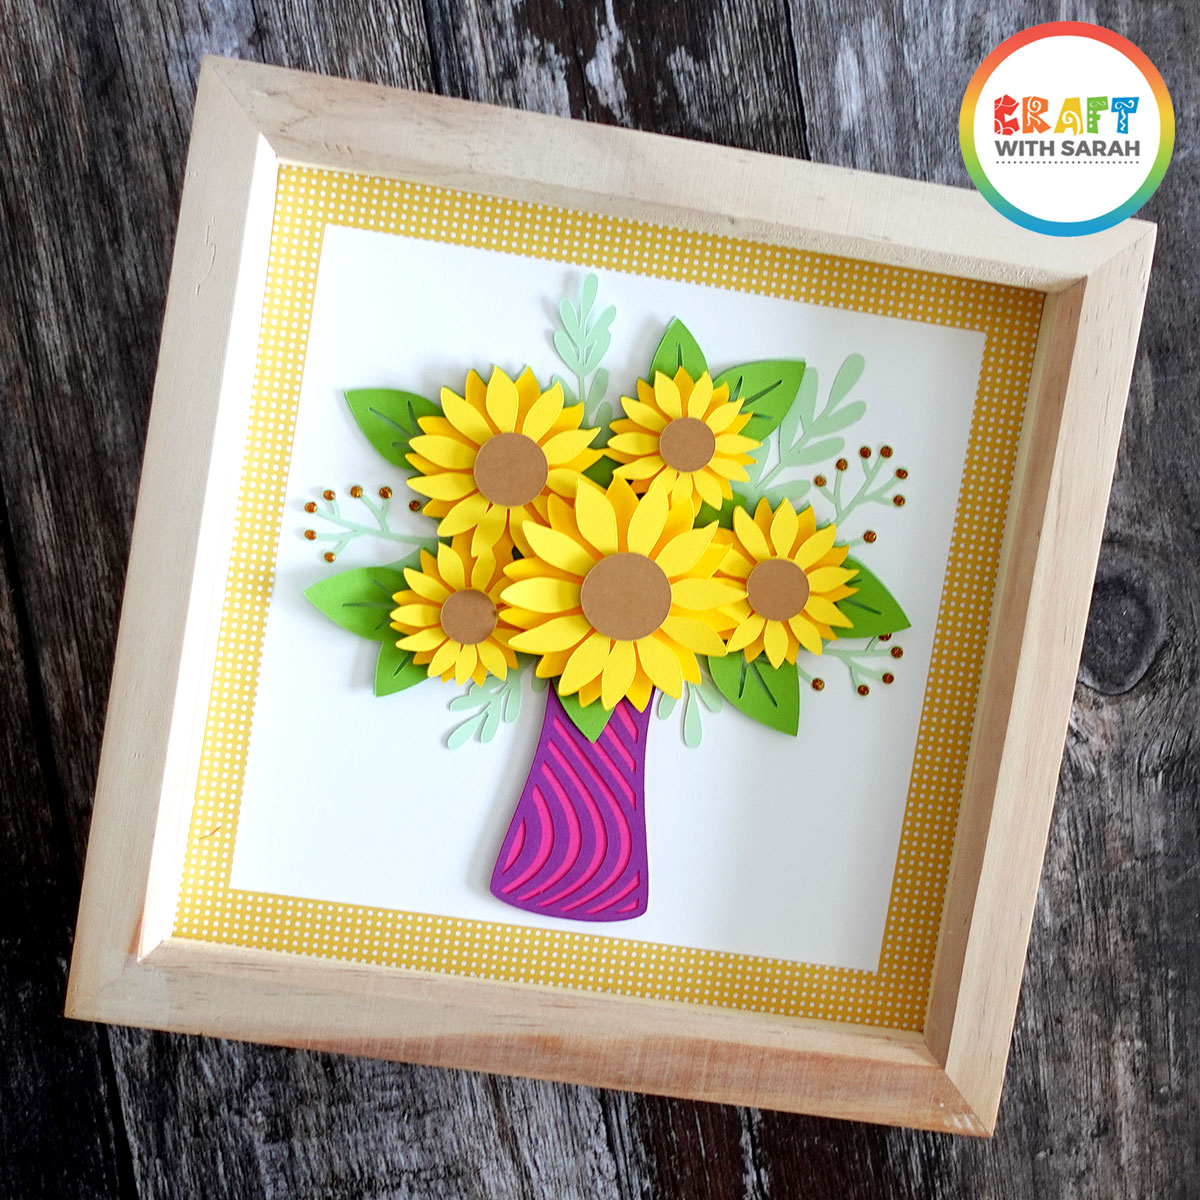 Free layered sunflower shadow box file for Cricut